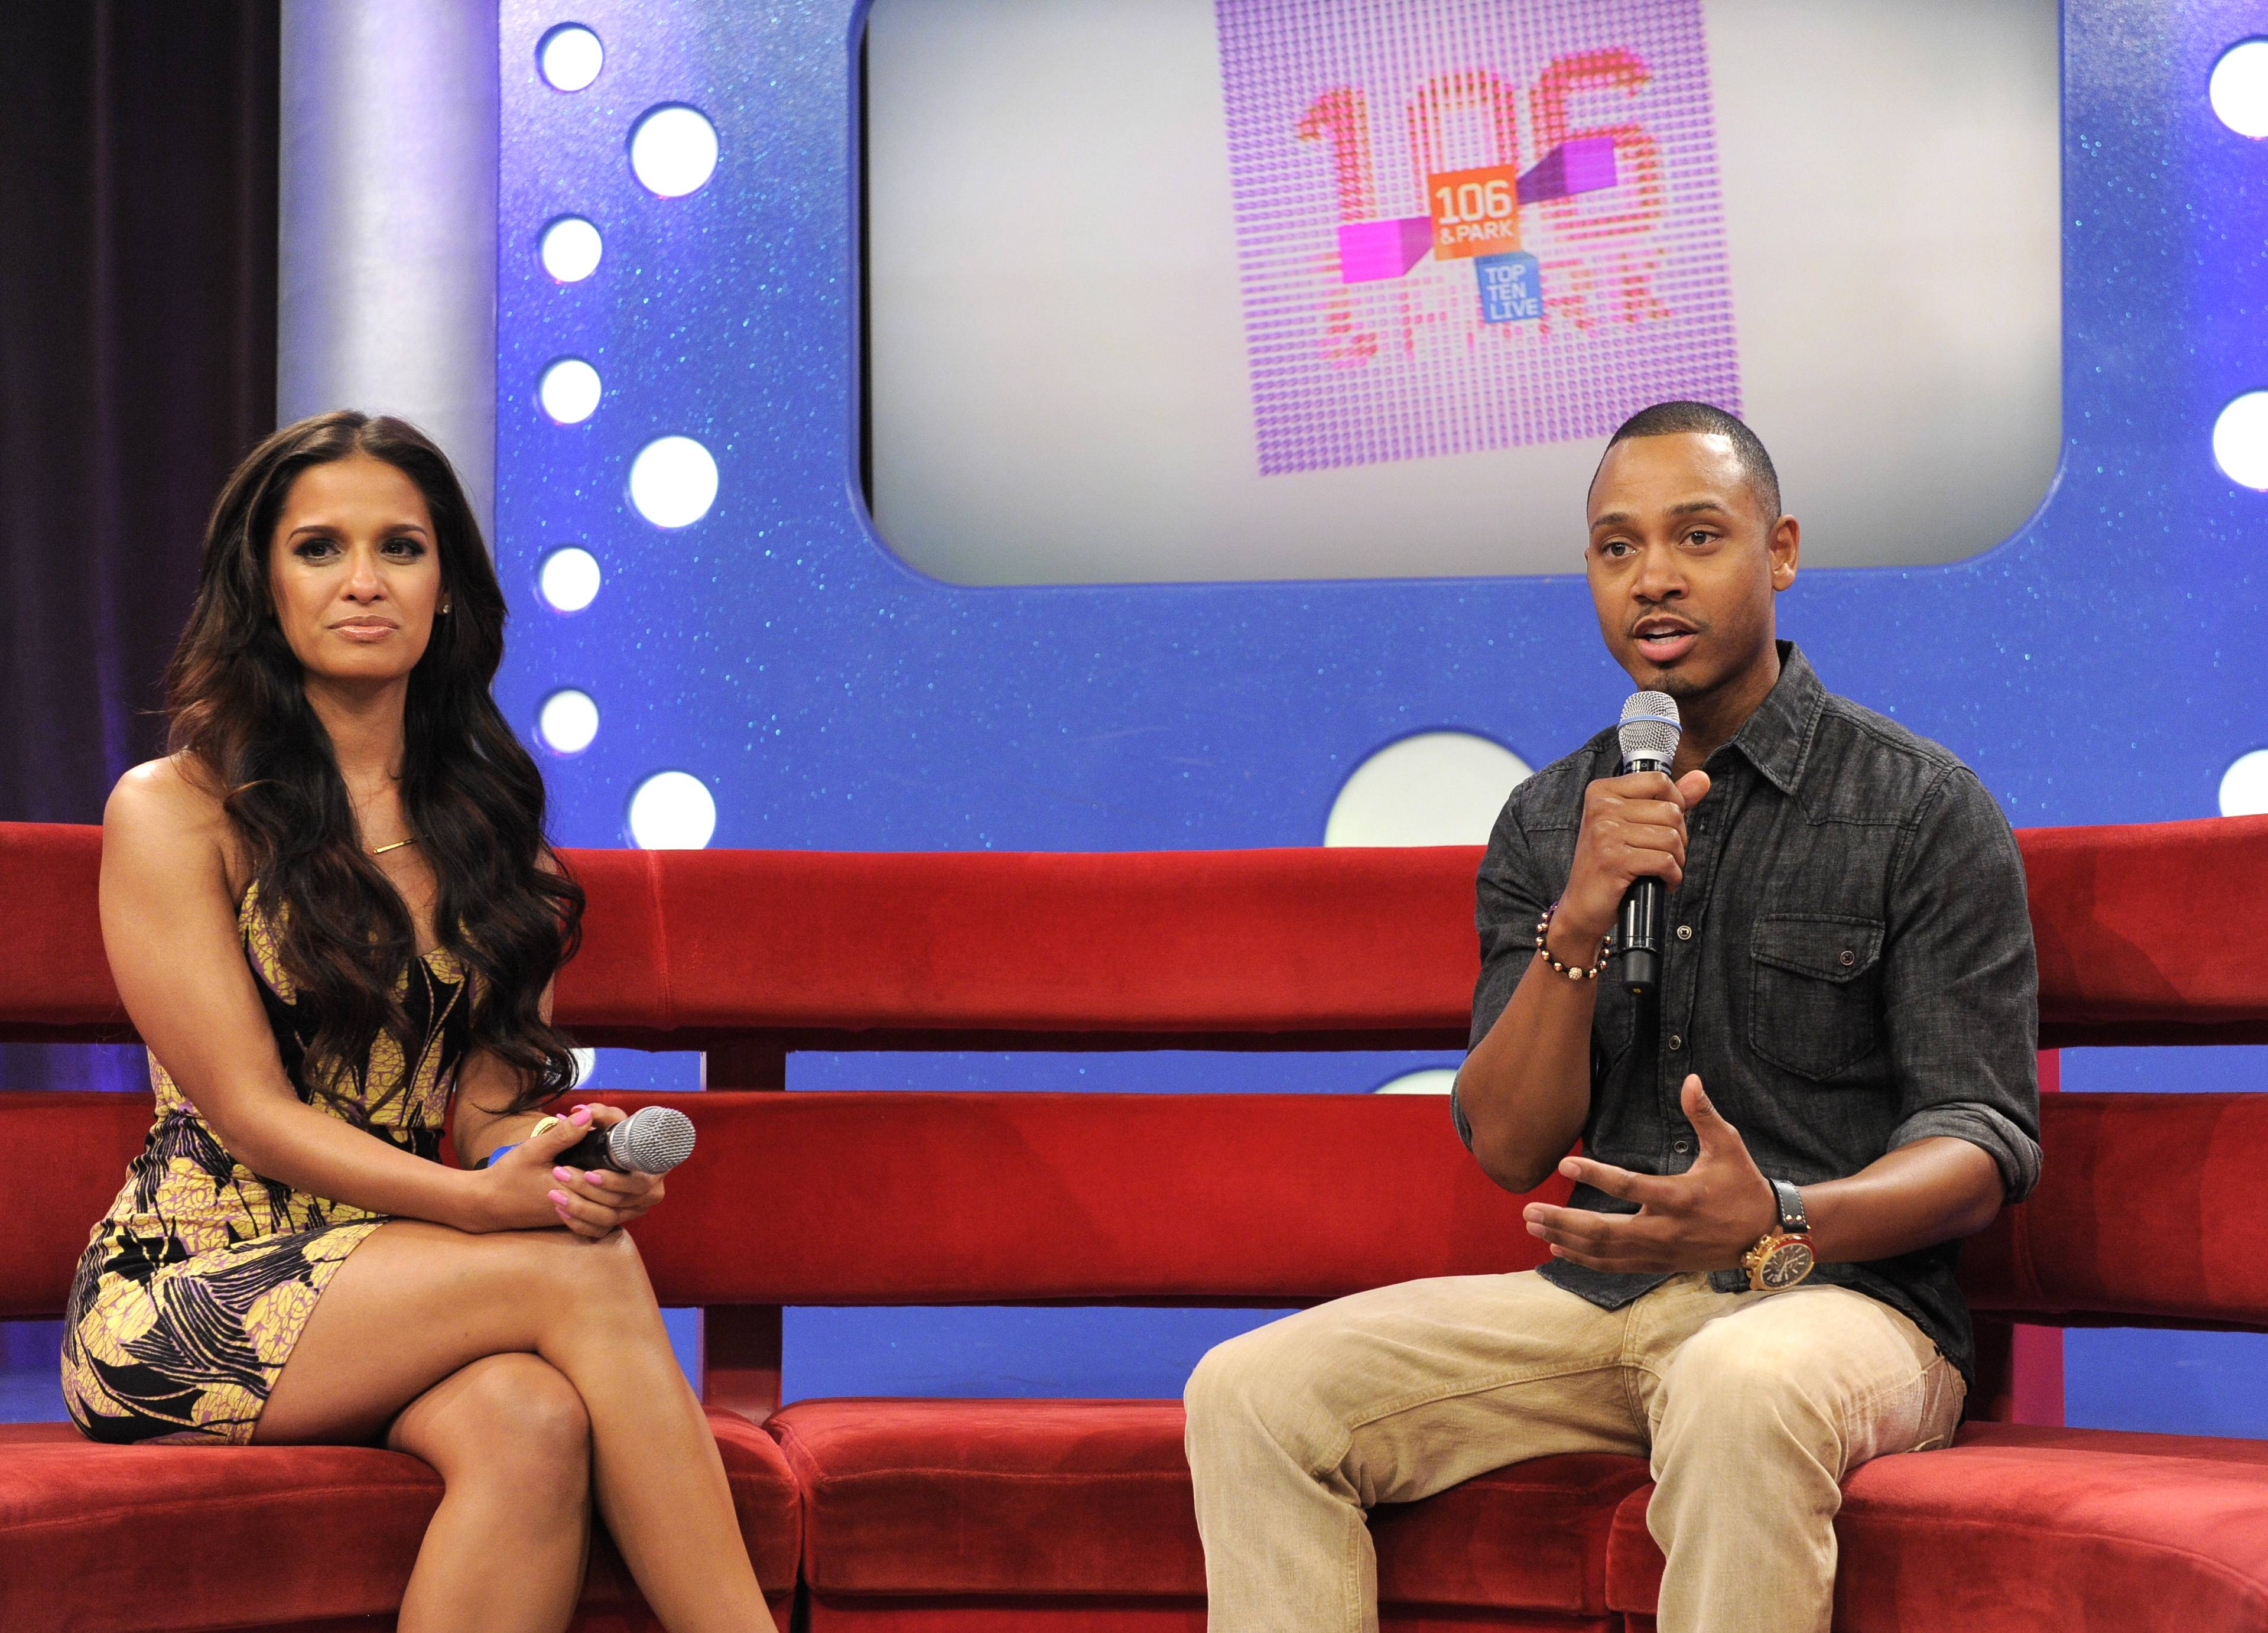 Fresh Faces - Terrence J and Rocsi Diazannounce that they will be leaving the show in the near future at 106 & Park, May 29, 2012. (Photo: John Ricard / BET)